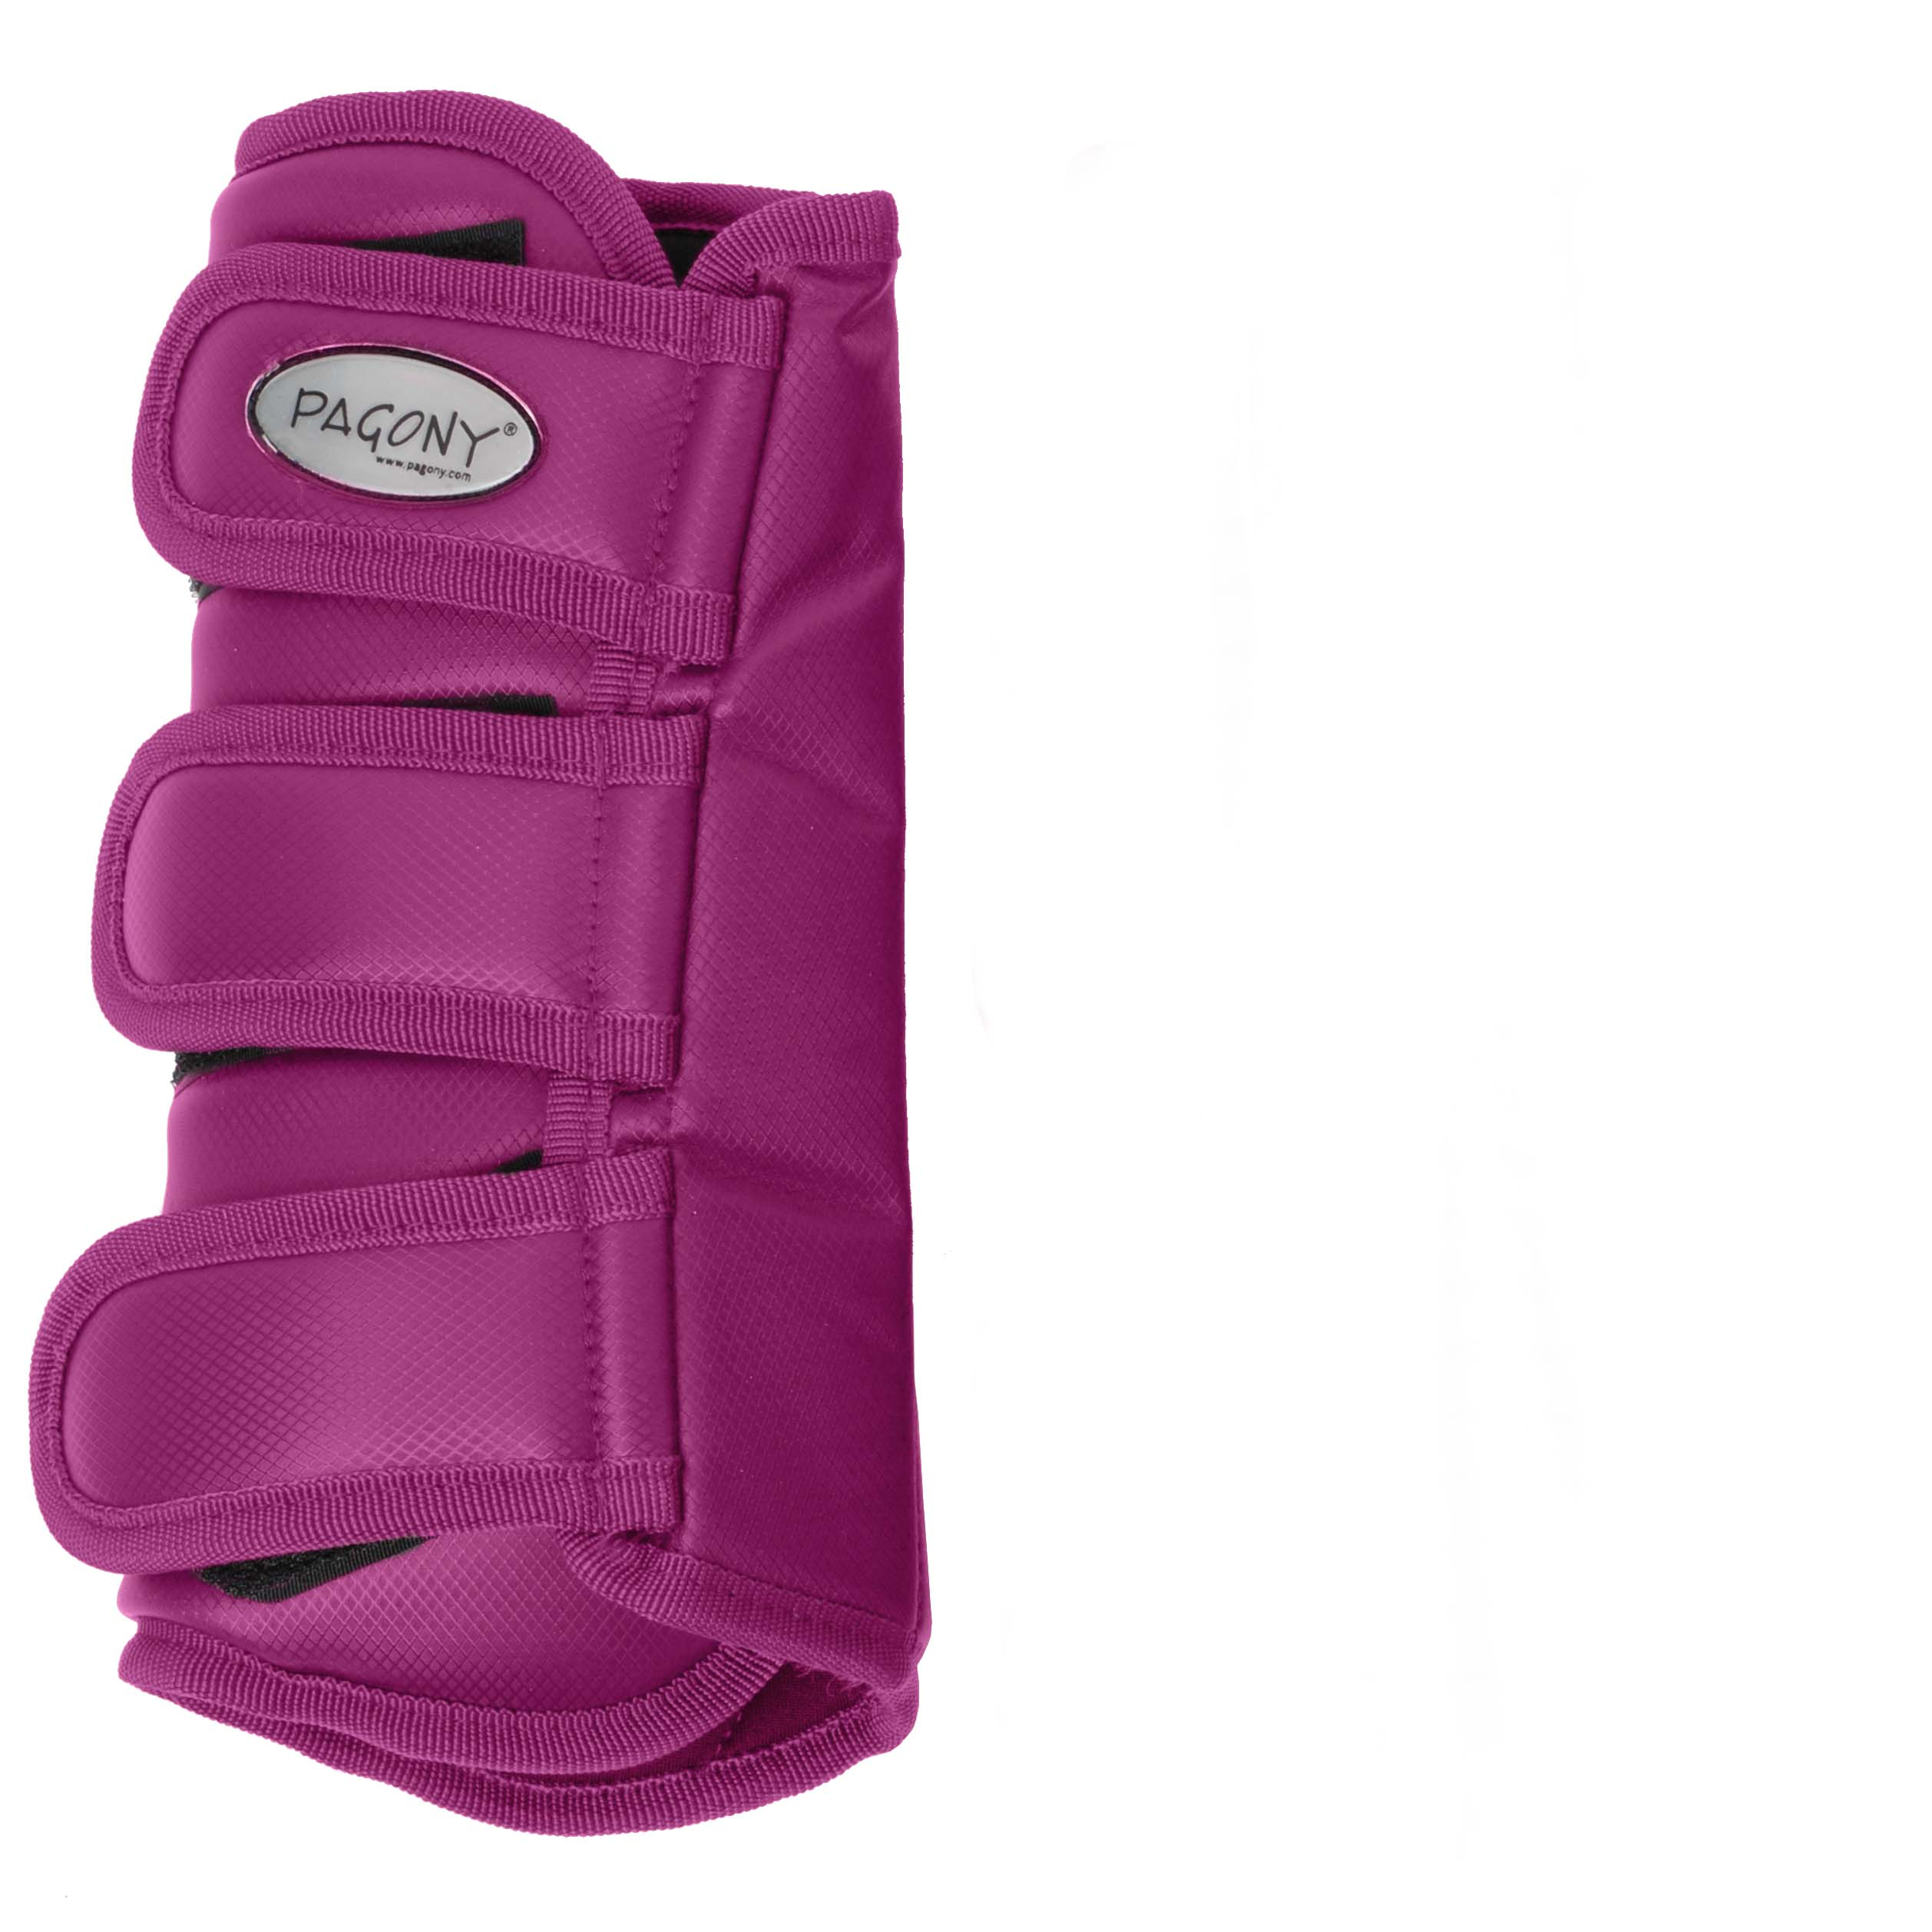 Pagony Dressage Boots achter fuchsia maat:full